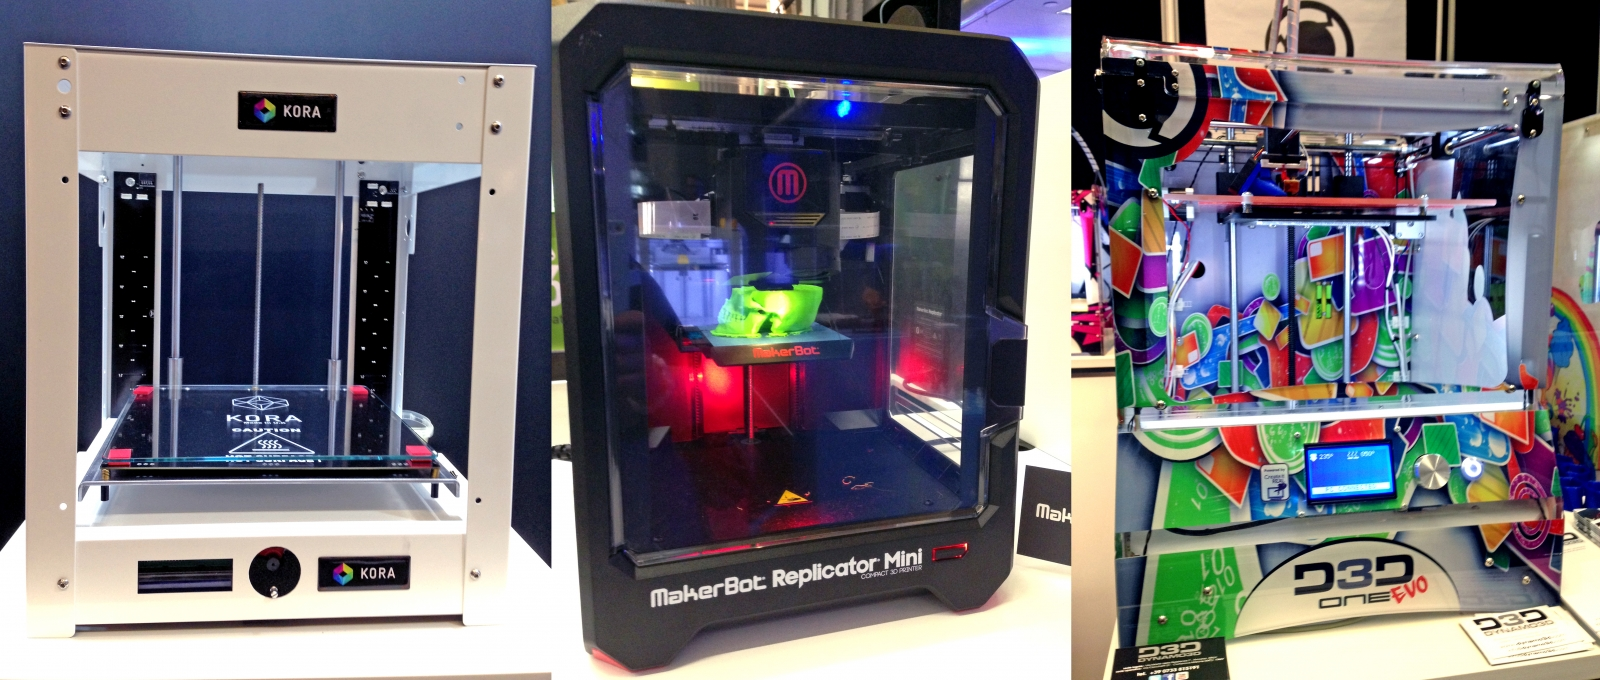 Here's a look at our favourite desktop 3D printers from the 3D Printshow 2014 in London